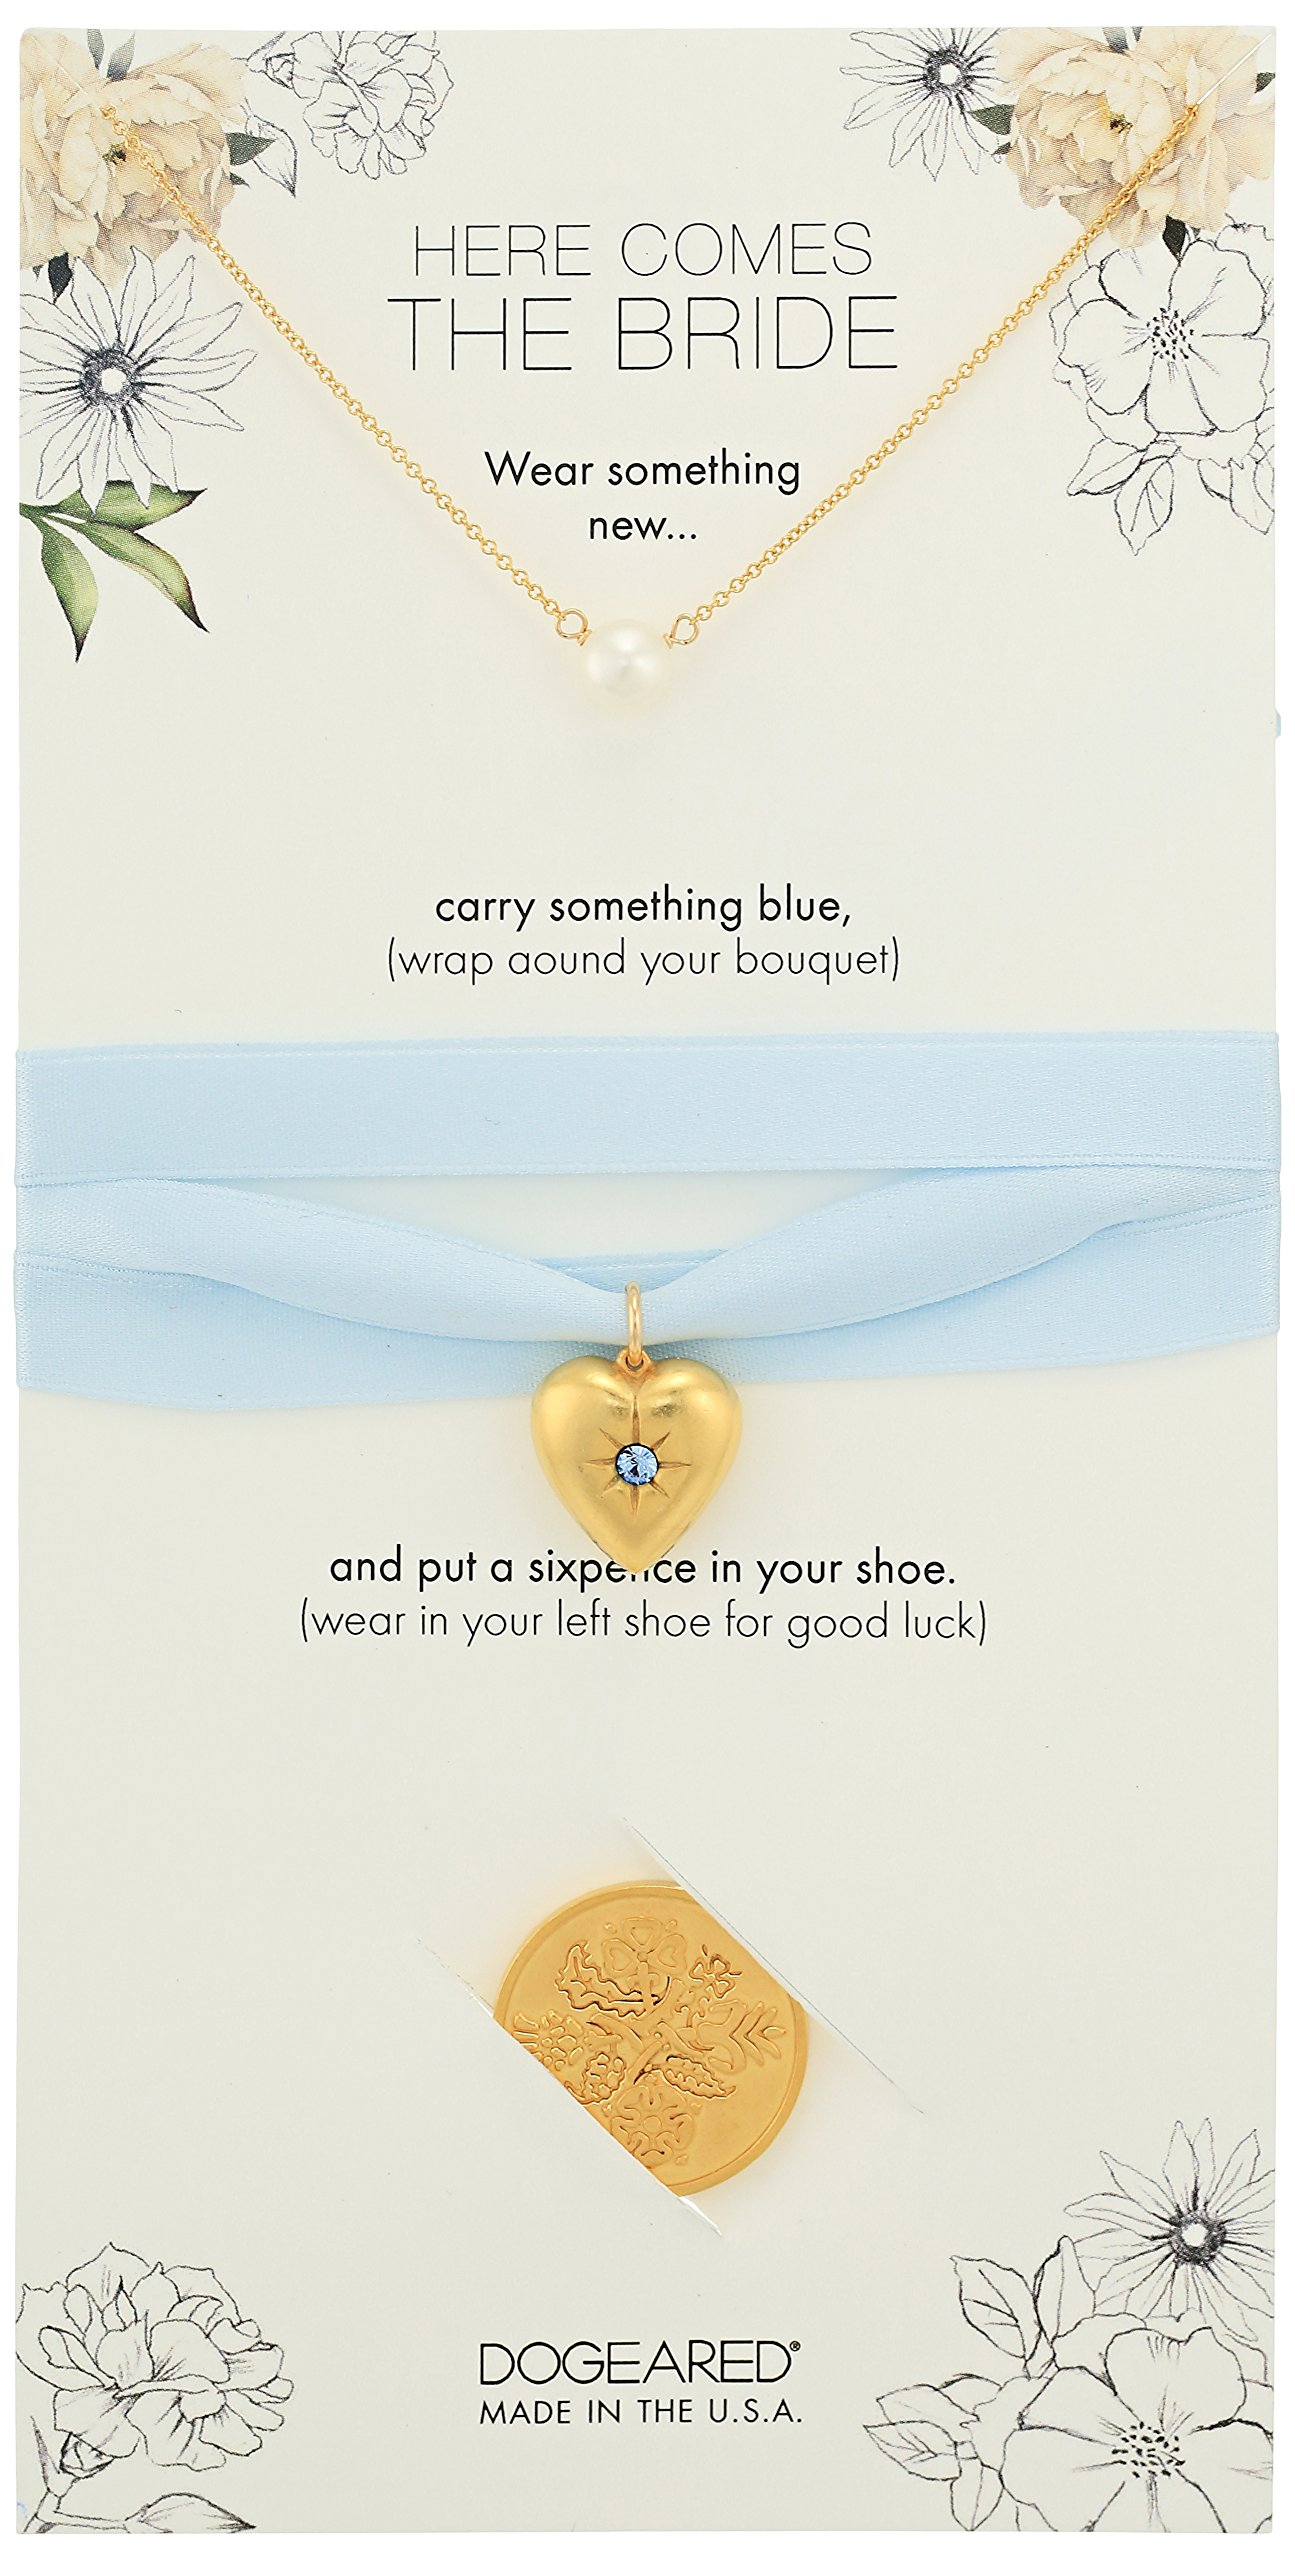 Dogeared Here Comes The Bride Small Pearl Necklace, 6 Pence Gold, 16'' + 2'' Extension